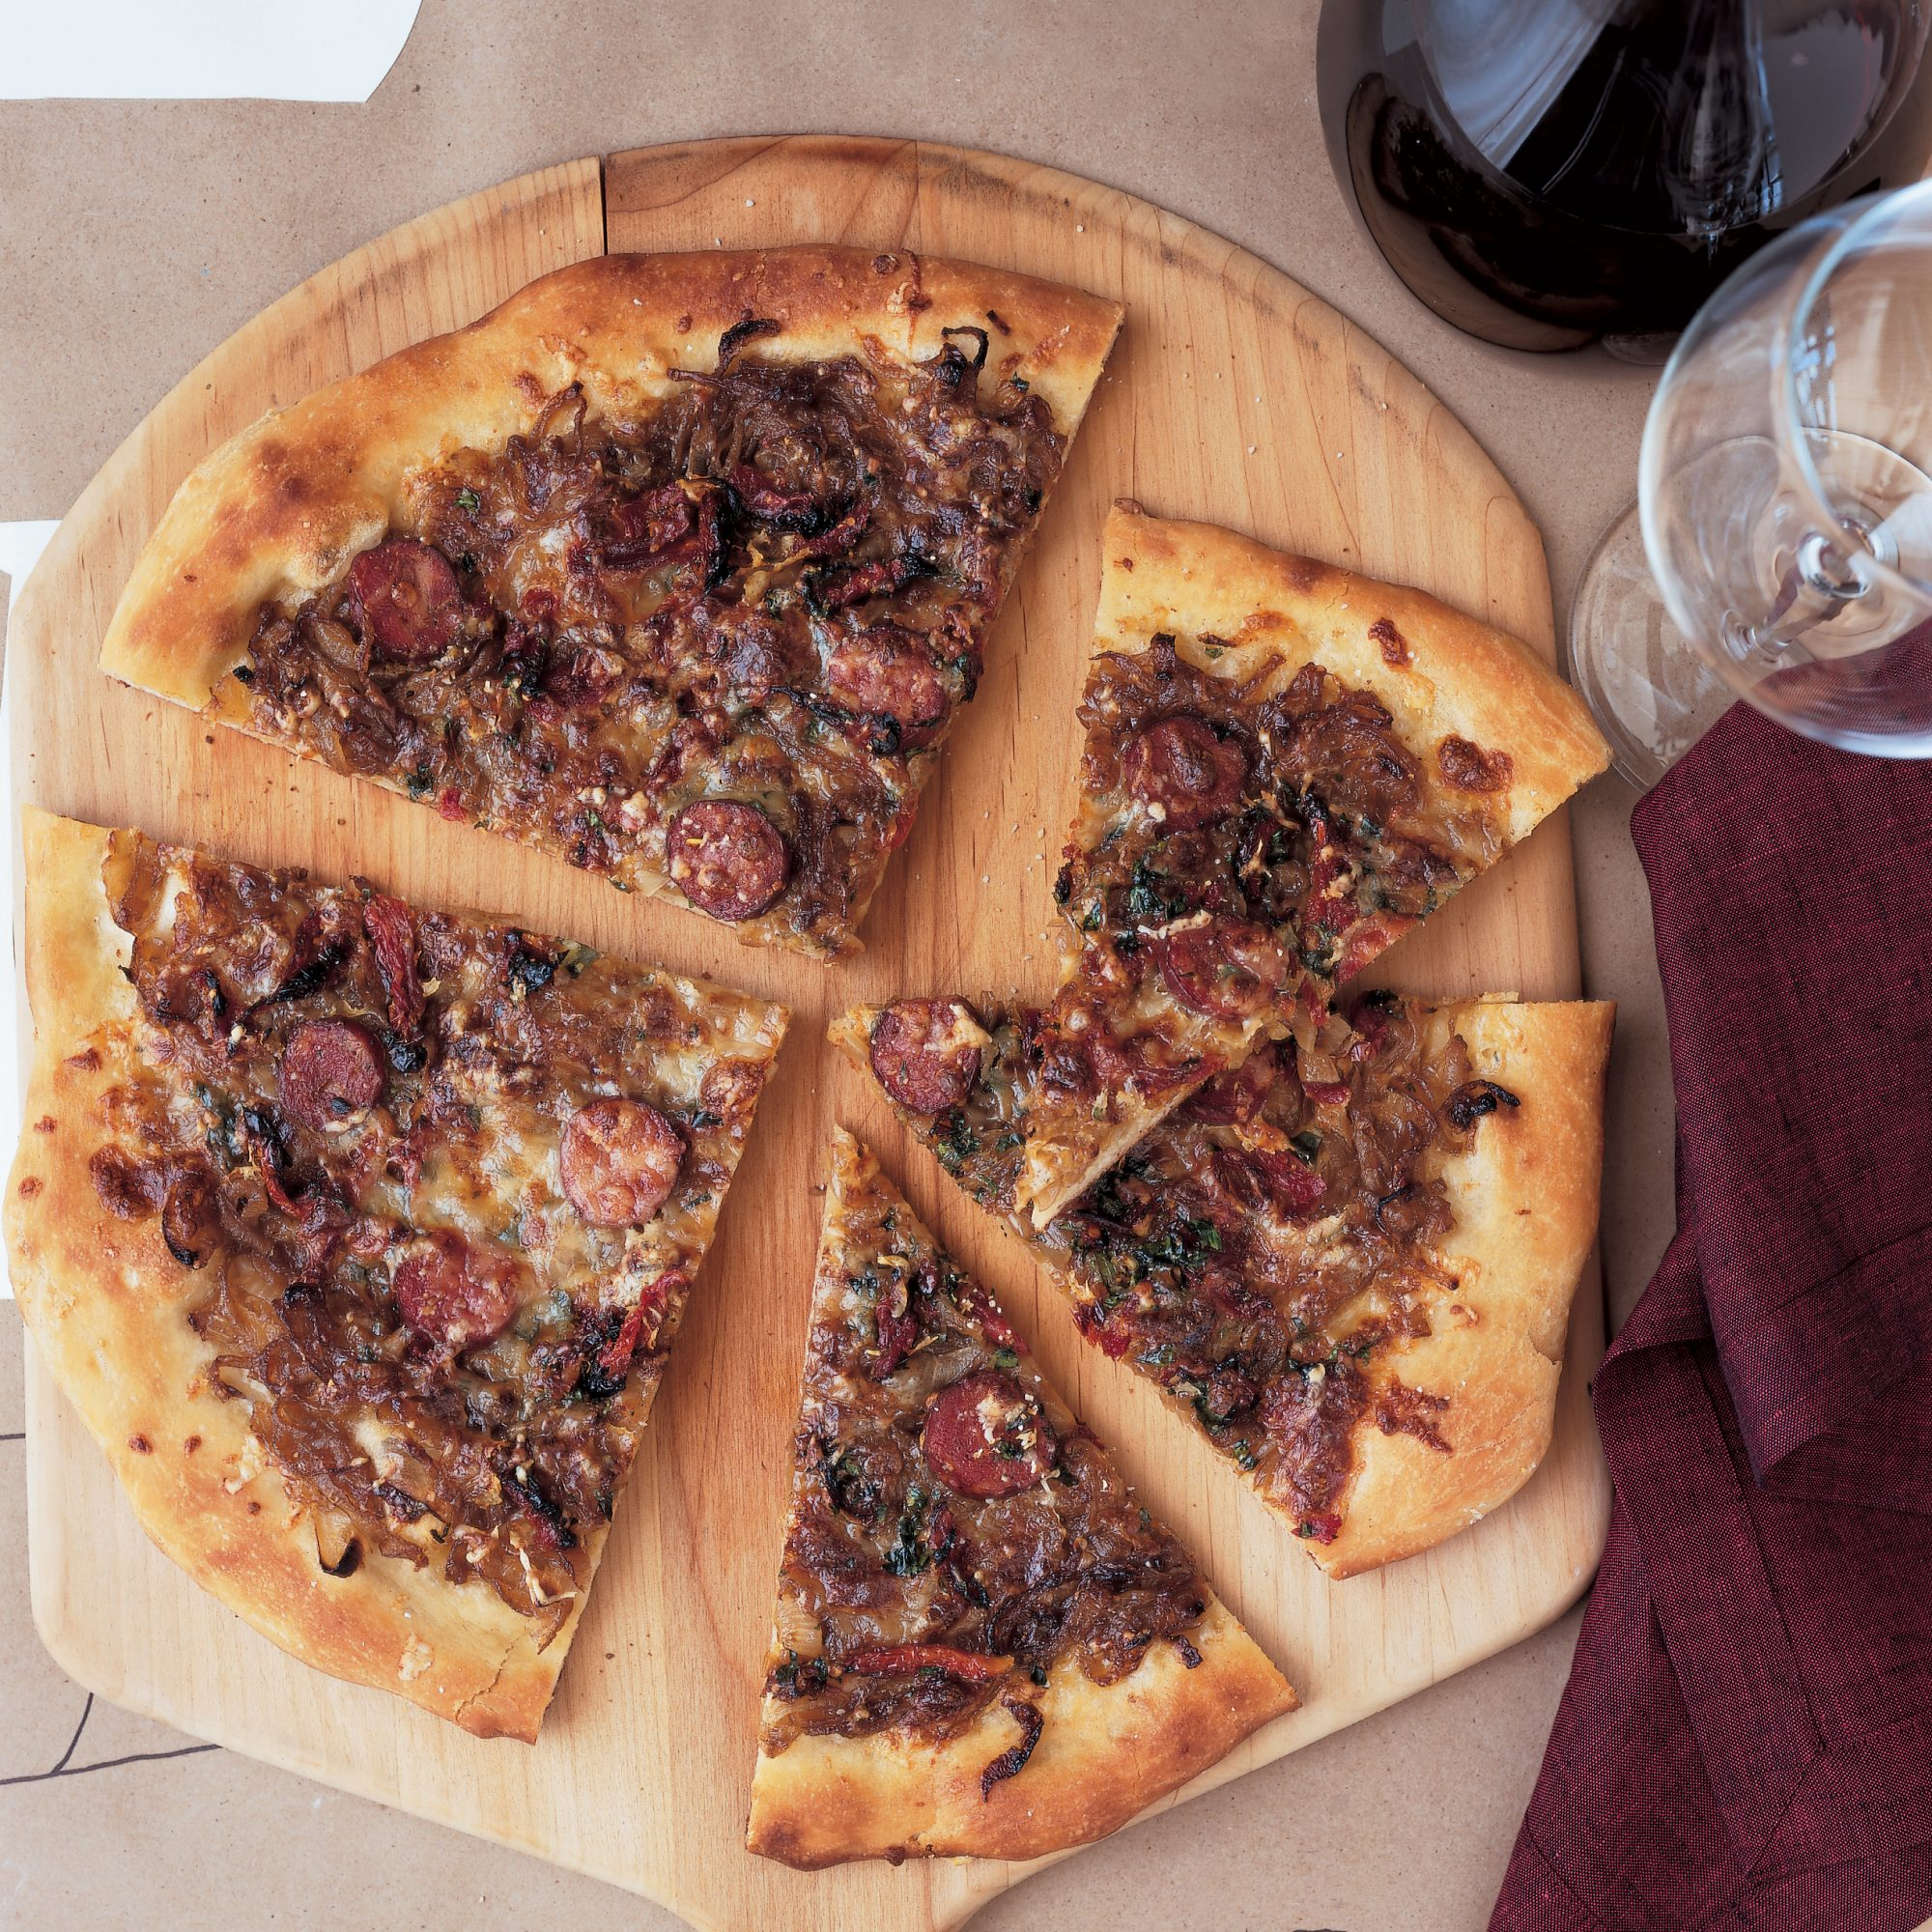 200210-r-andouille-pizza-with-onion-confit-and-fontina-cheese-200210-190-andou.jpg